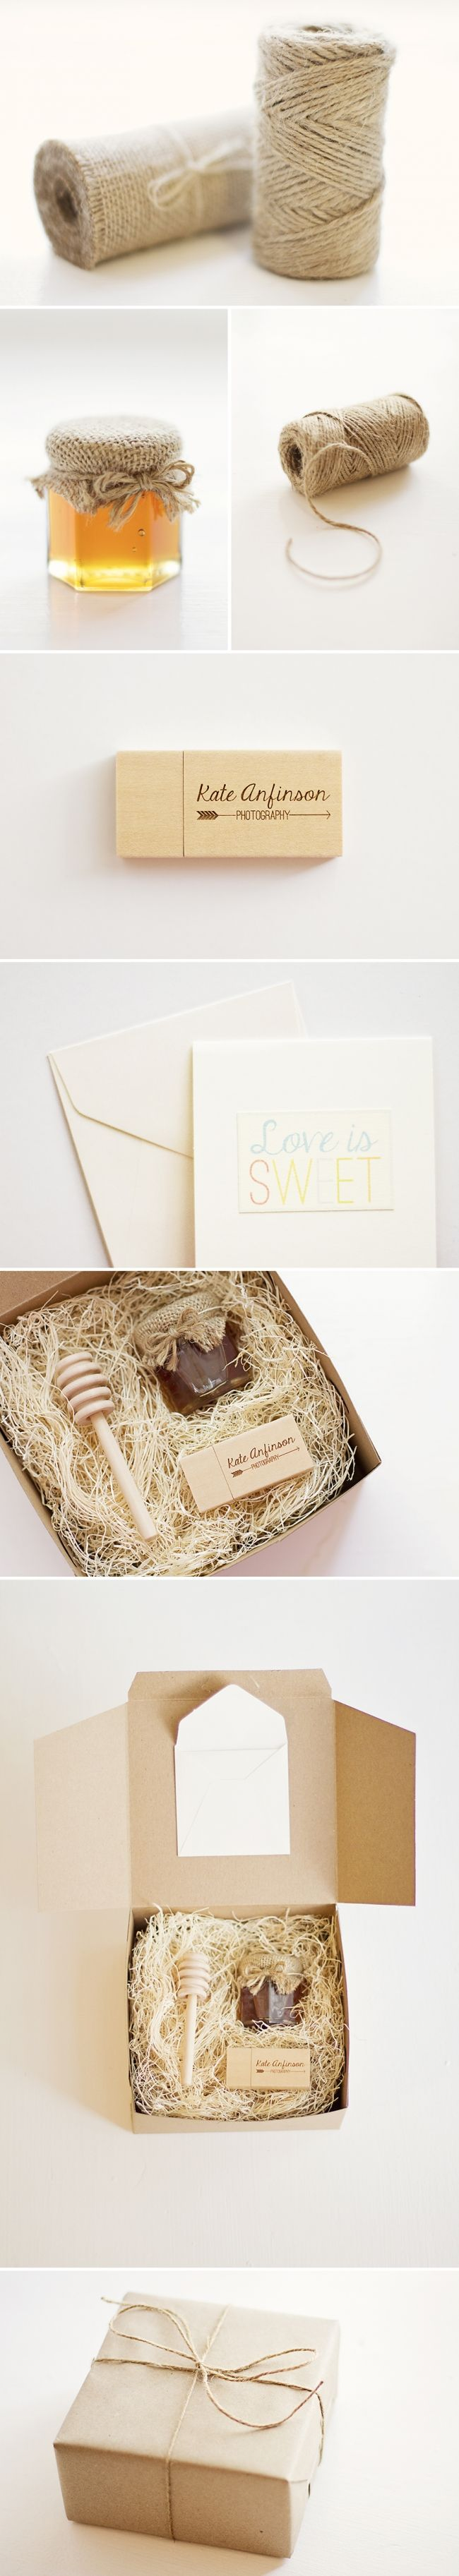 wedding photography client packaging // kate anfinson photography // austin, tx